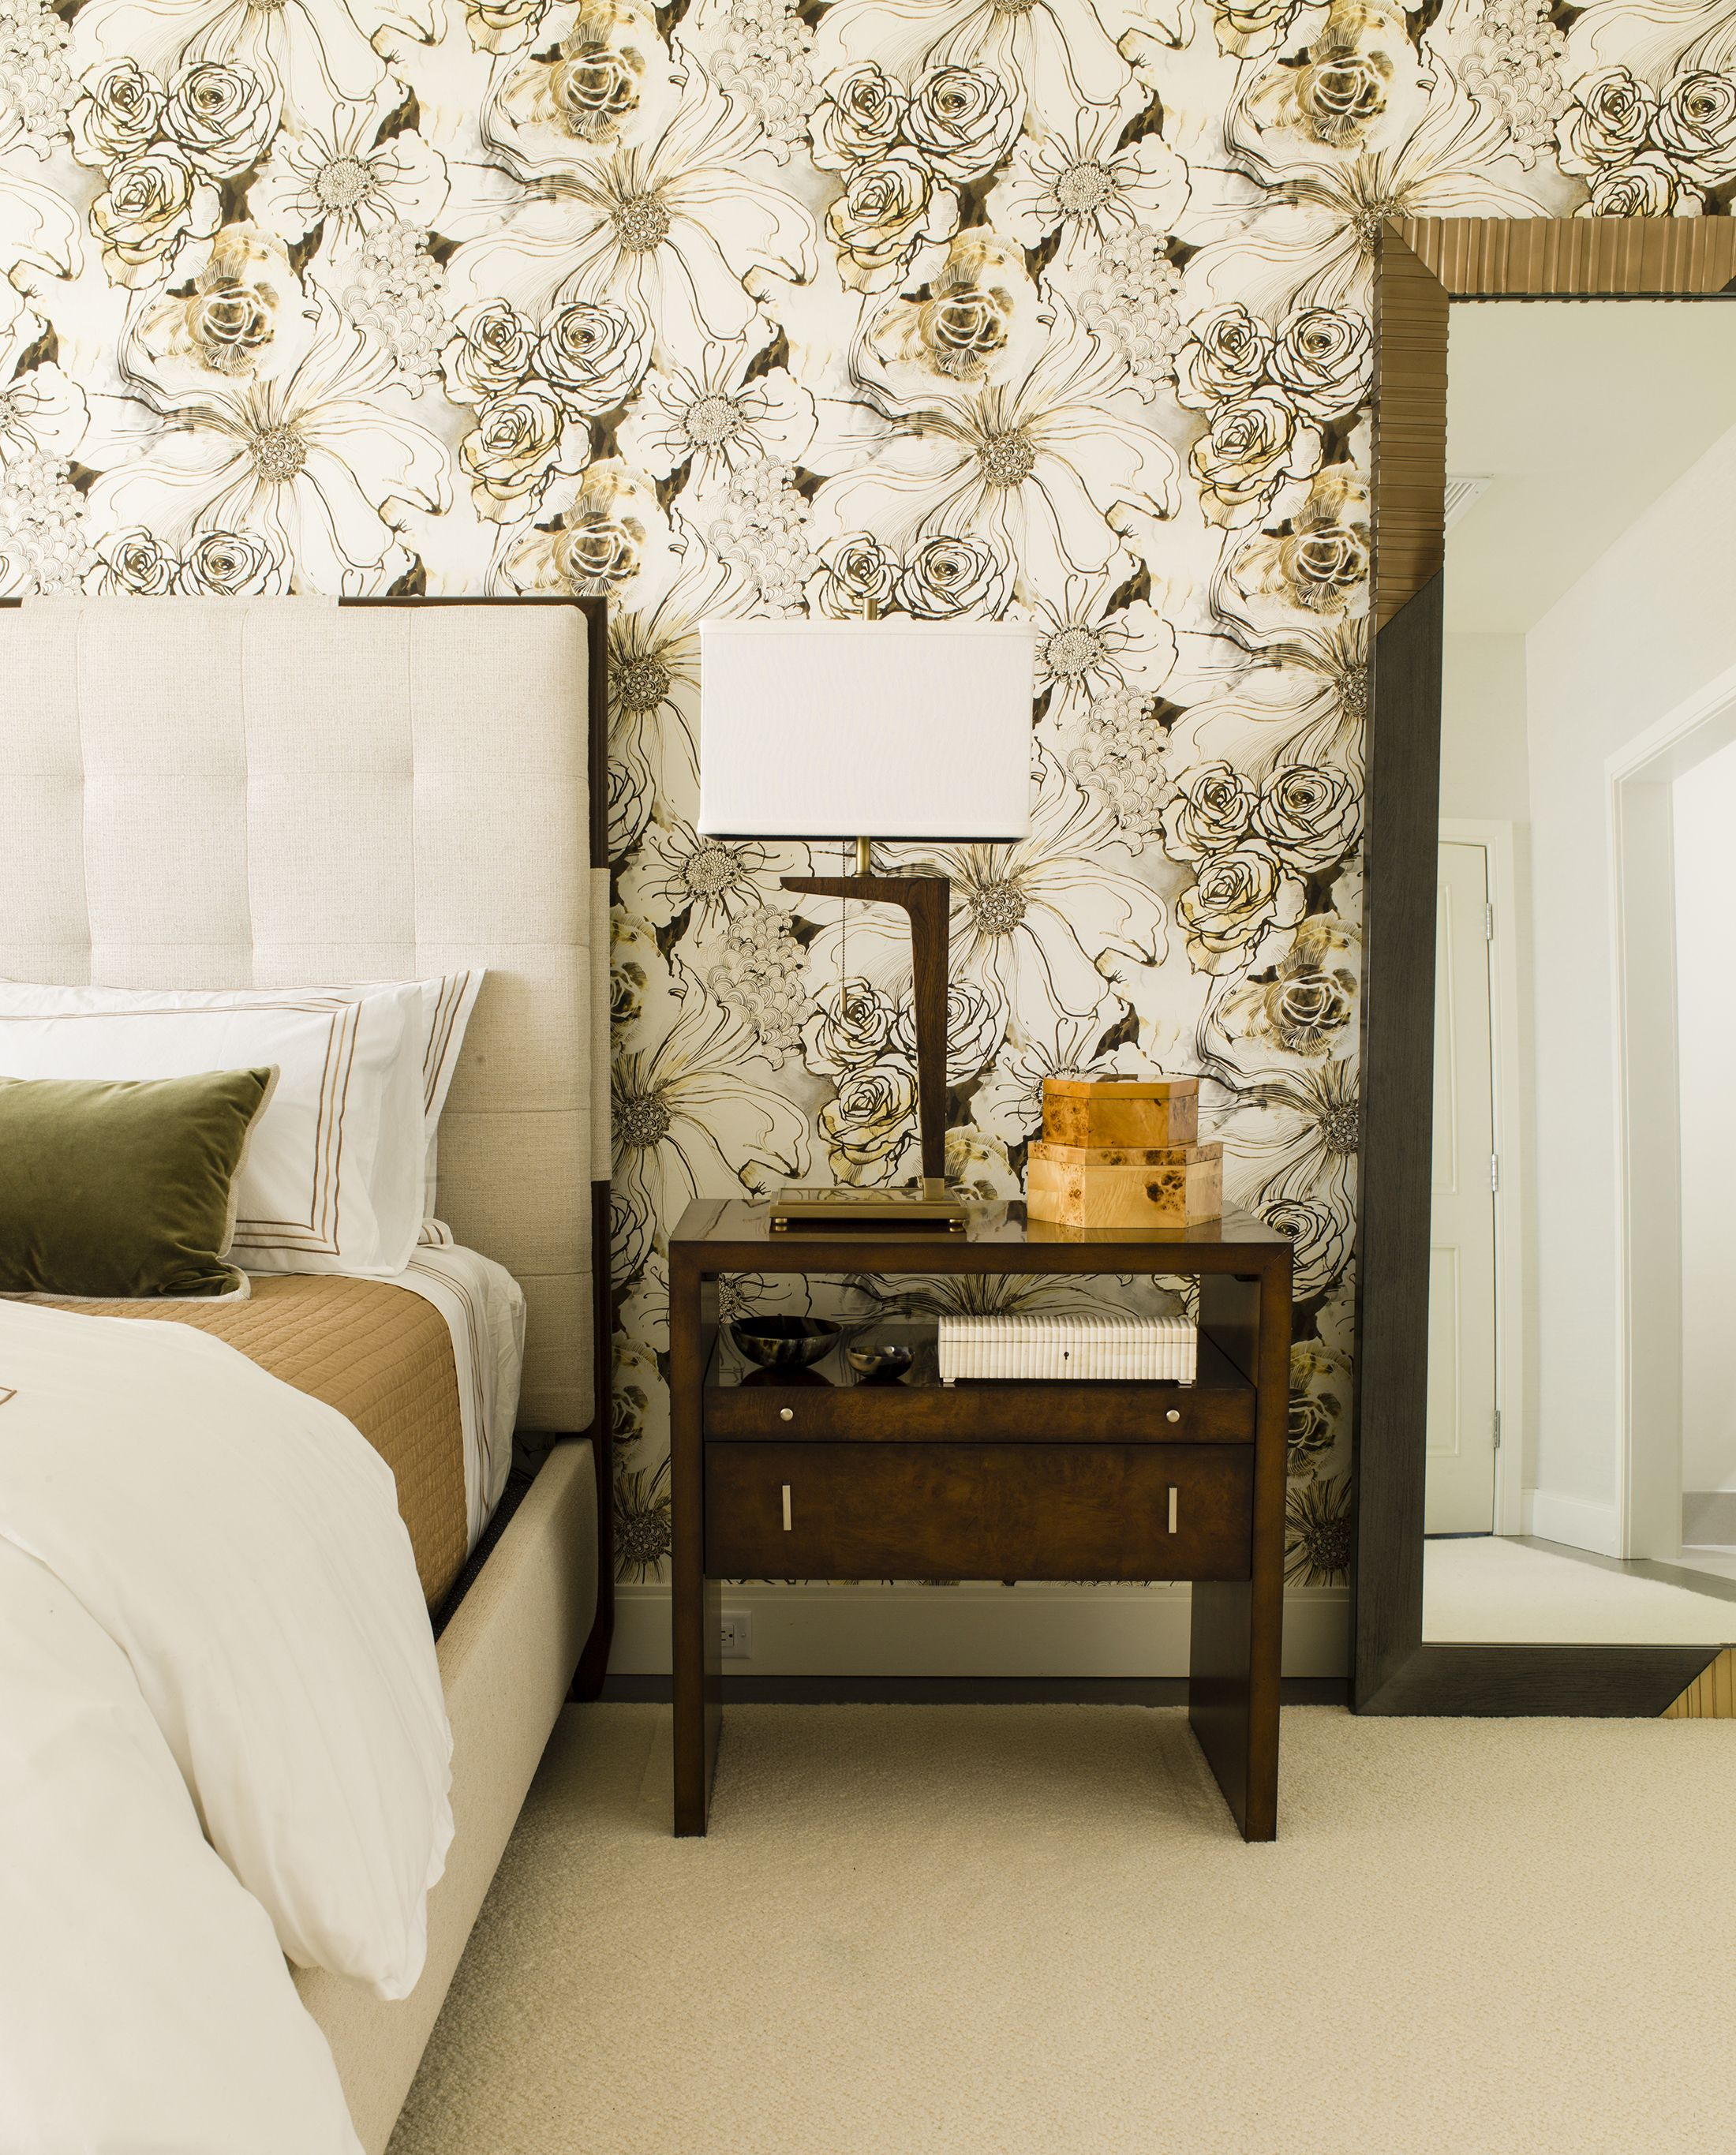 11 Bedroom Wallpaper Ideas - Statement Wallpapers We Love